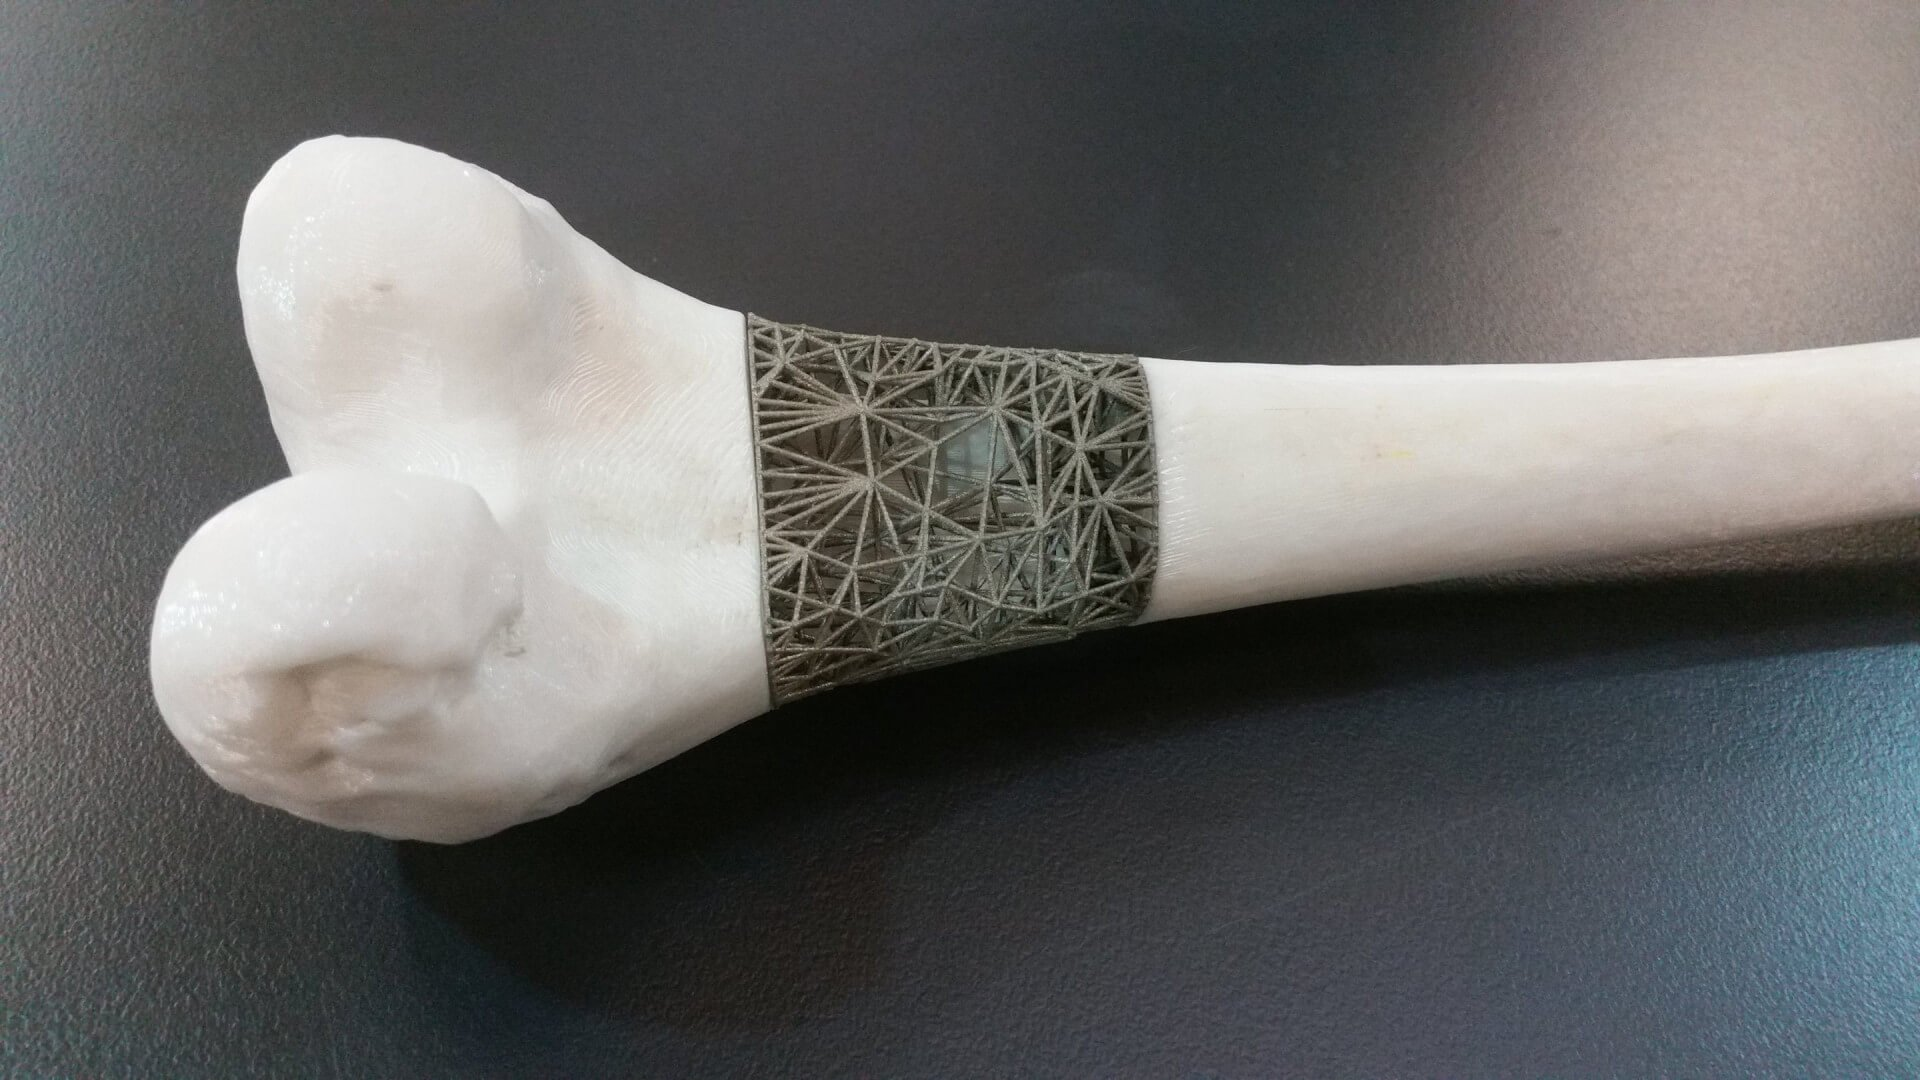 Doctors Plan to 3D Print Bone Implants Mid-Surgery | All3DP